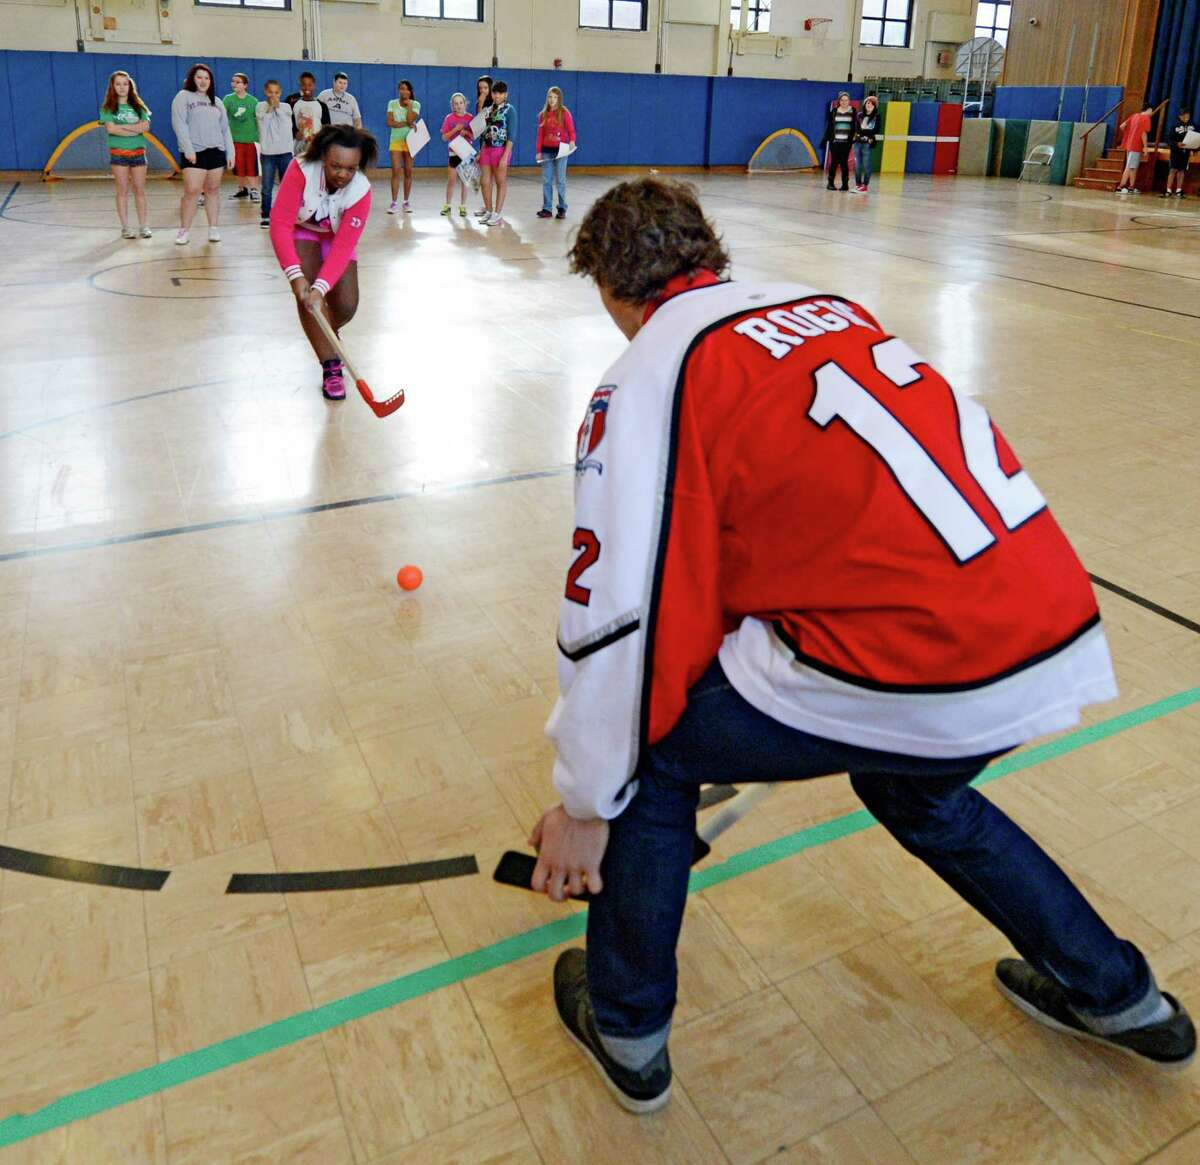 Johnny Rogic of the RPI mens? hockey team shows students how to block shots at the goal during a demonstration Thursday afternoon, Jan. 17, 2013, at Doyle Middle School (Troy School 12) in Troy, N.Y. (Skip Dickstein/Times Union)